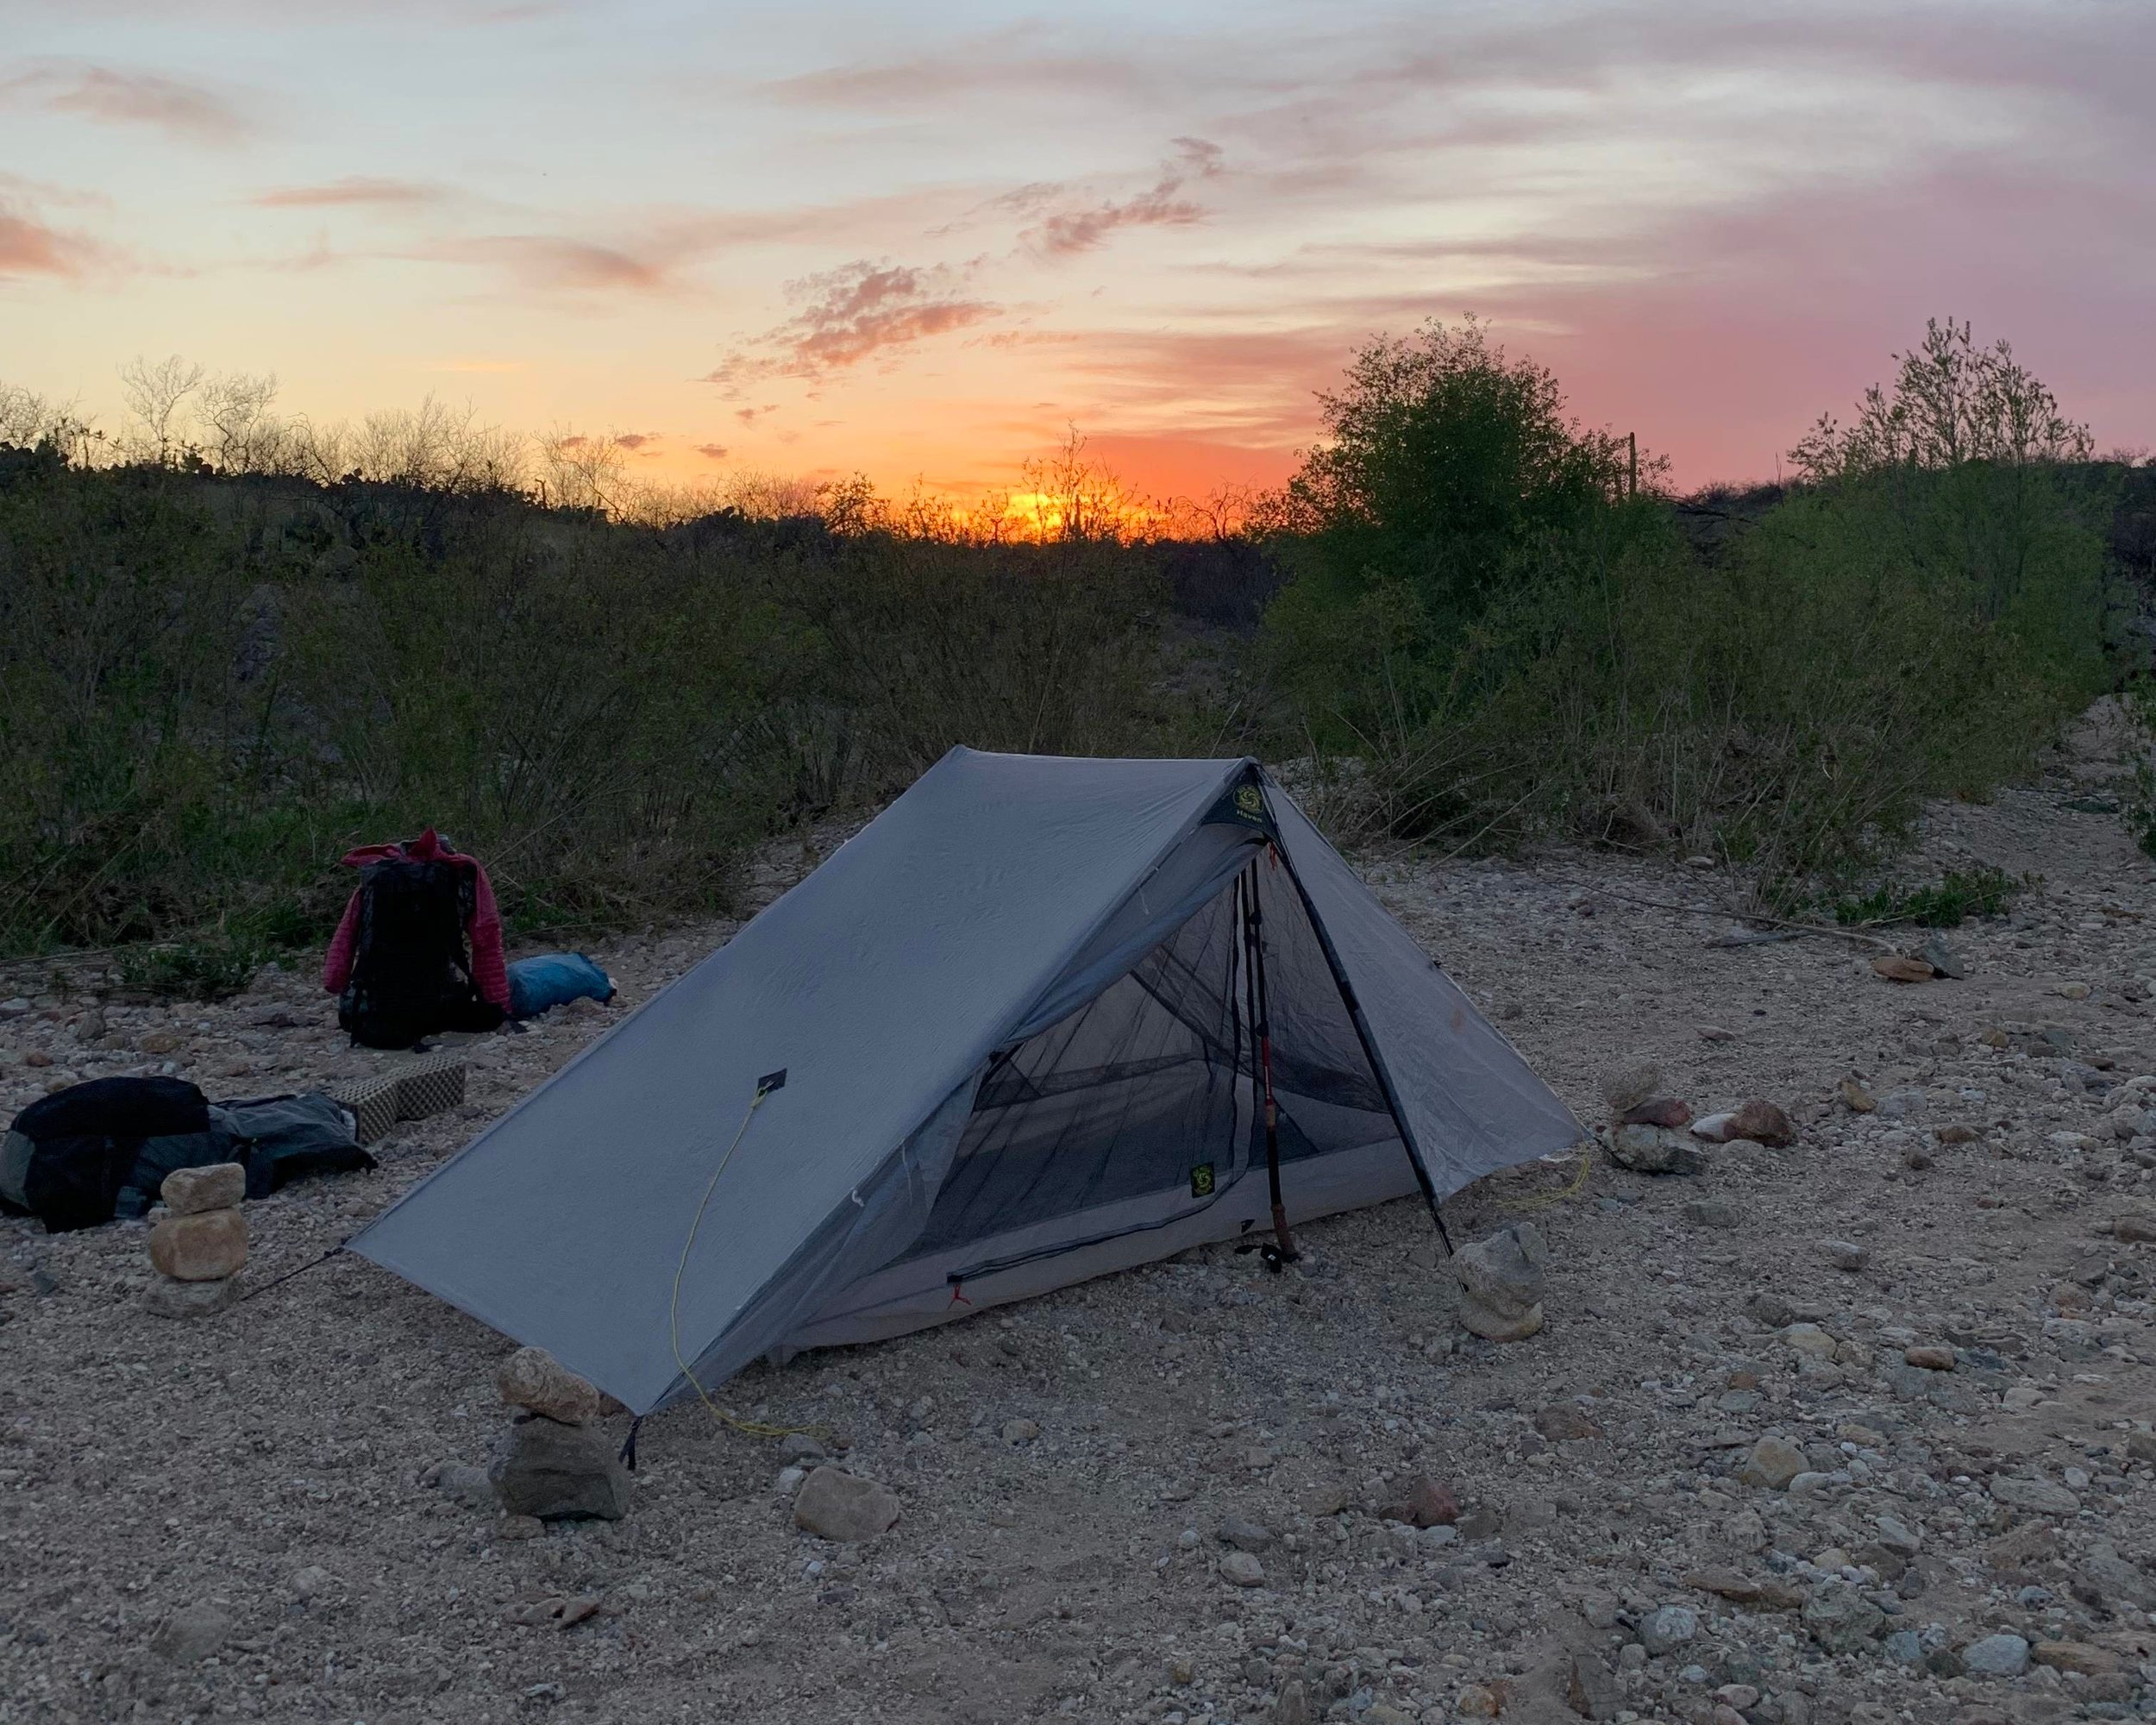 Backpacking Tent - Six Moon Designs HavenRead why→